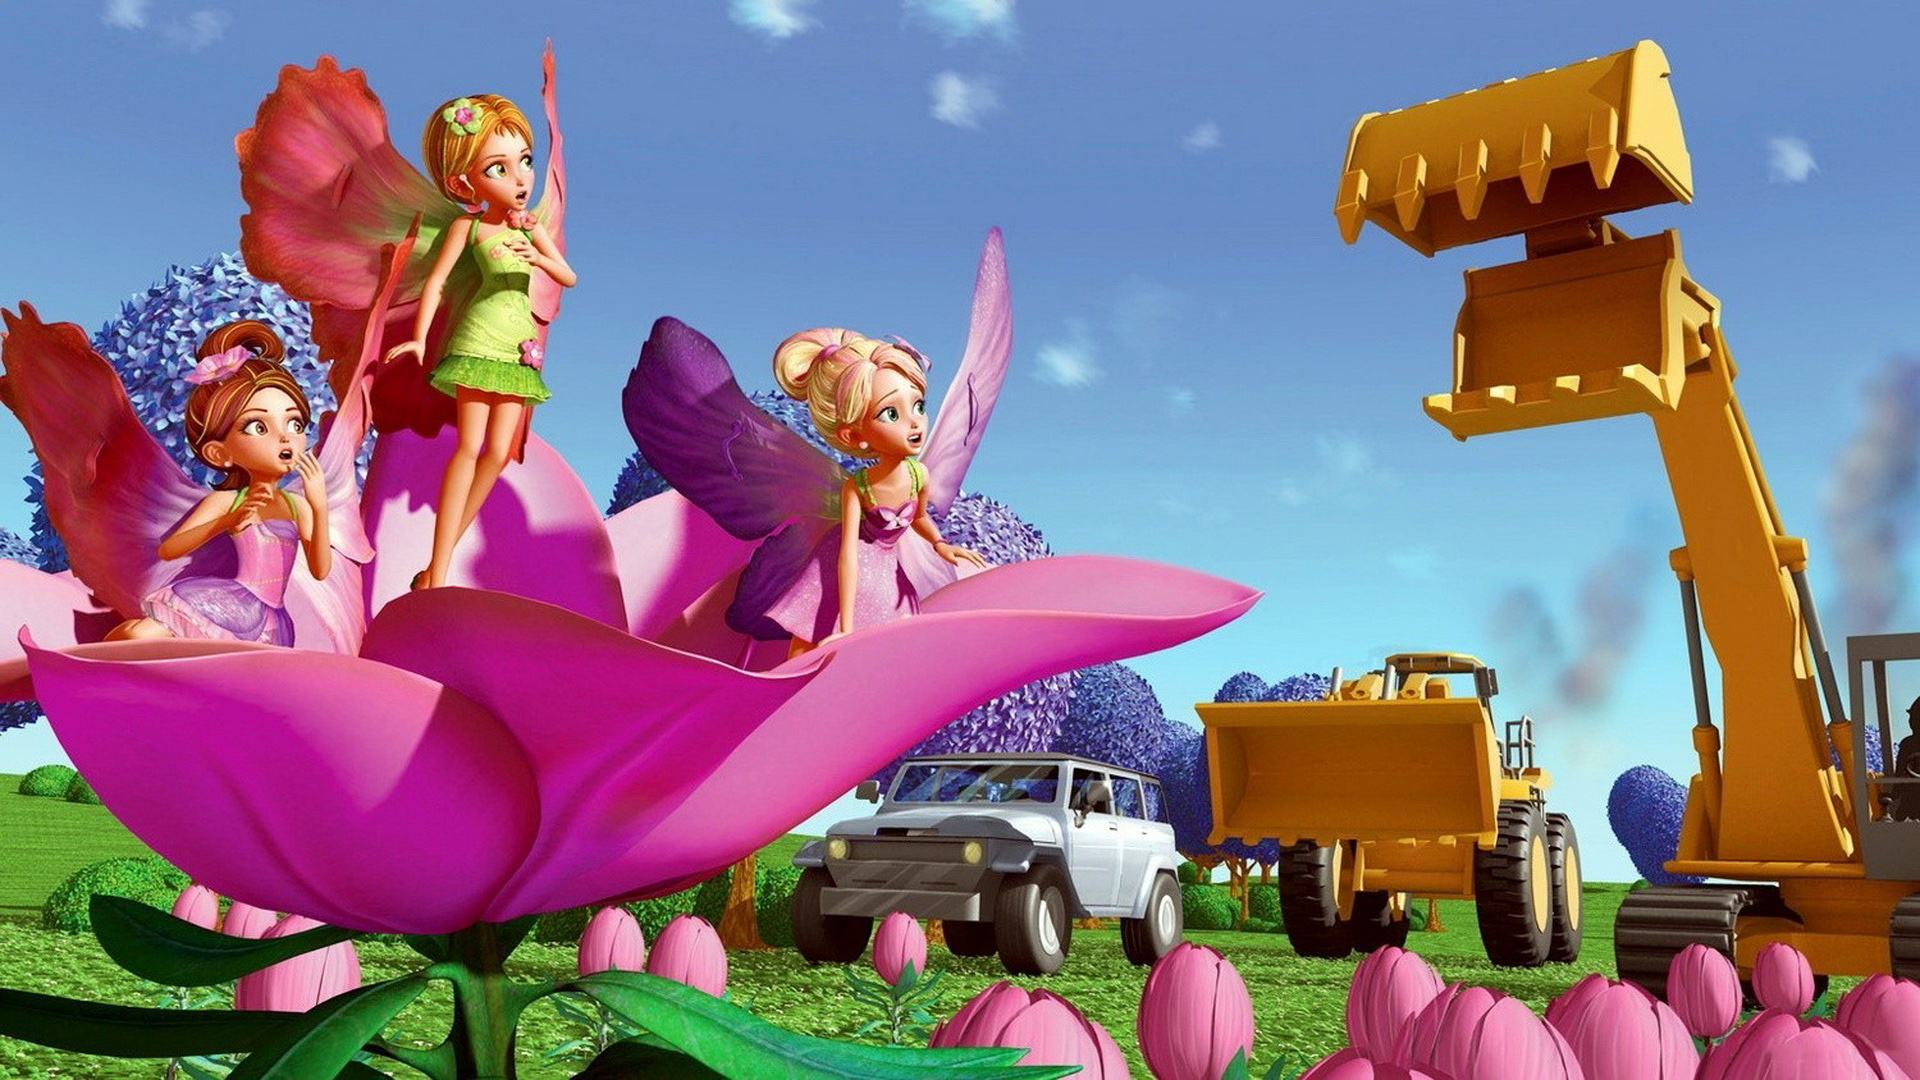 Thumbelina and his Twillerbee friends try to stop development in Barbie Presents Thumbelina (2009)